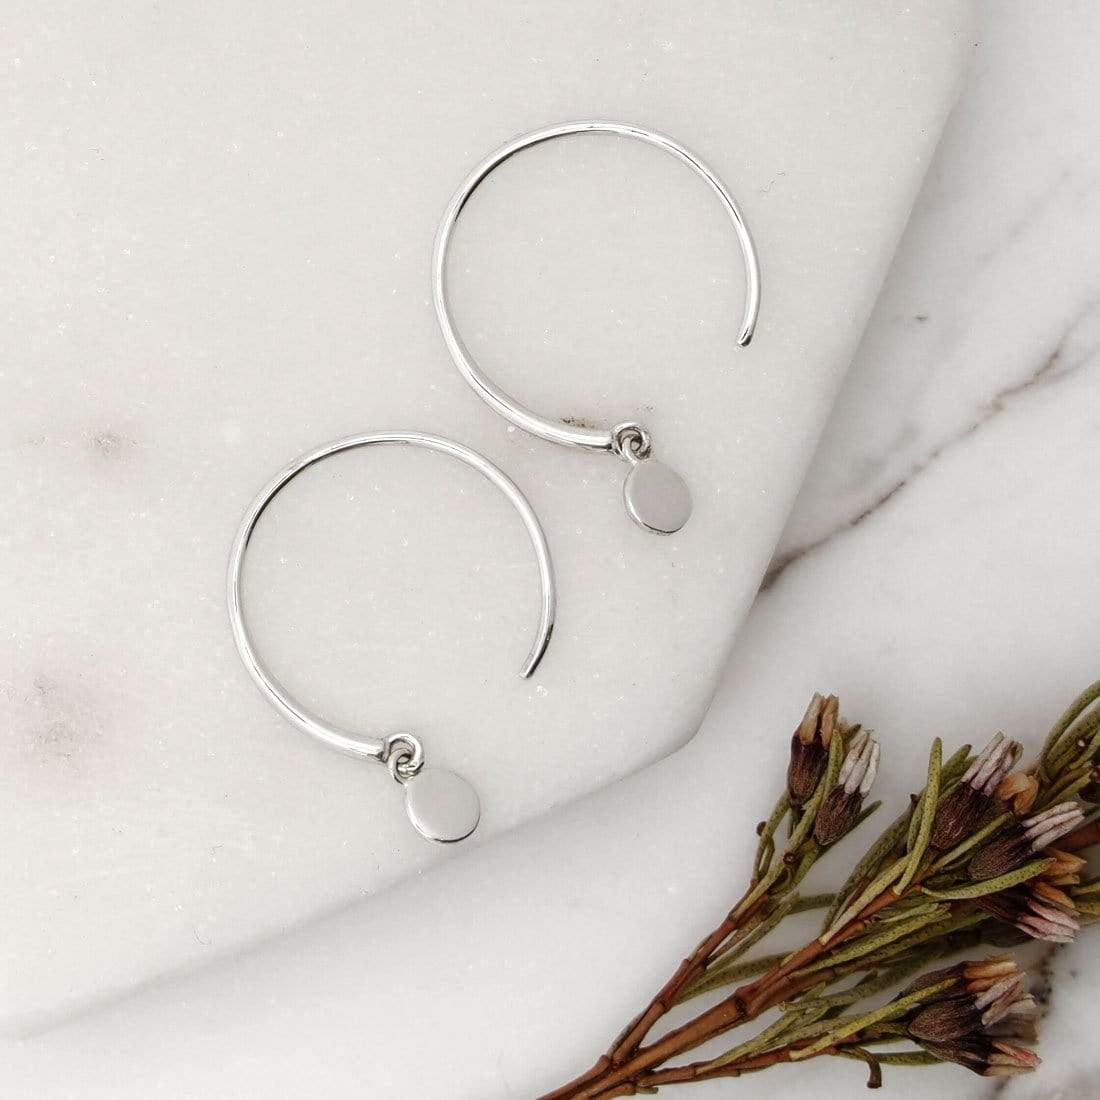 Midsummer Star Earrings Orbit Hoop Earrings